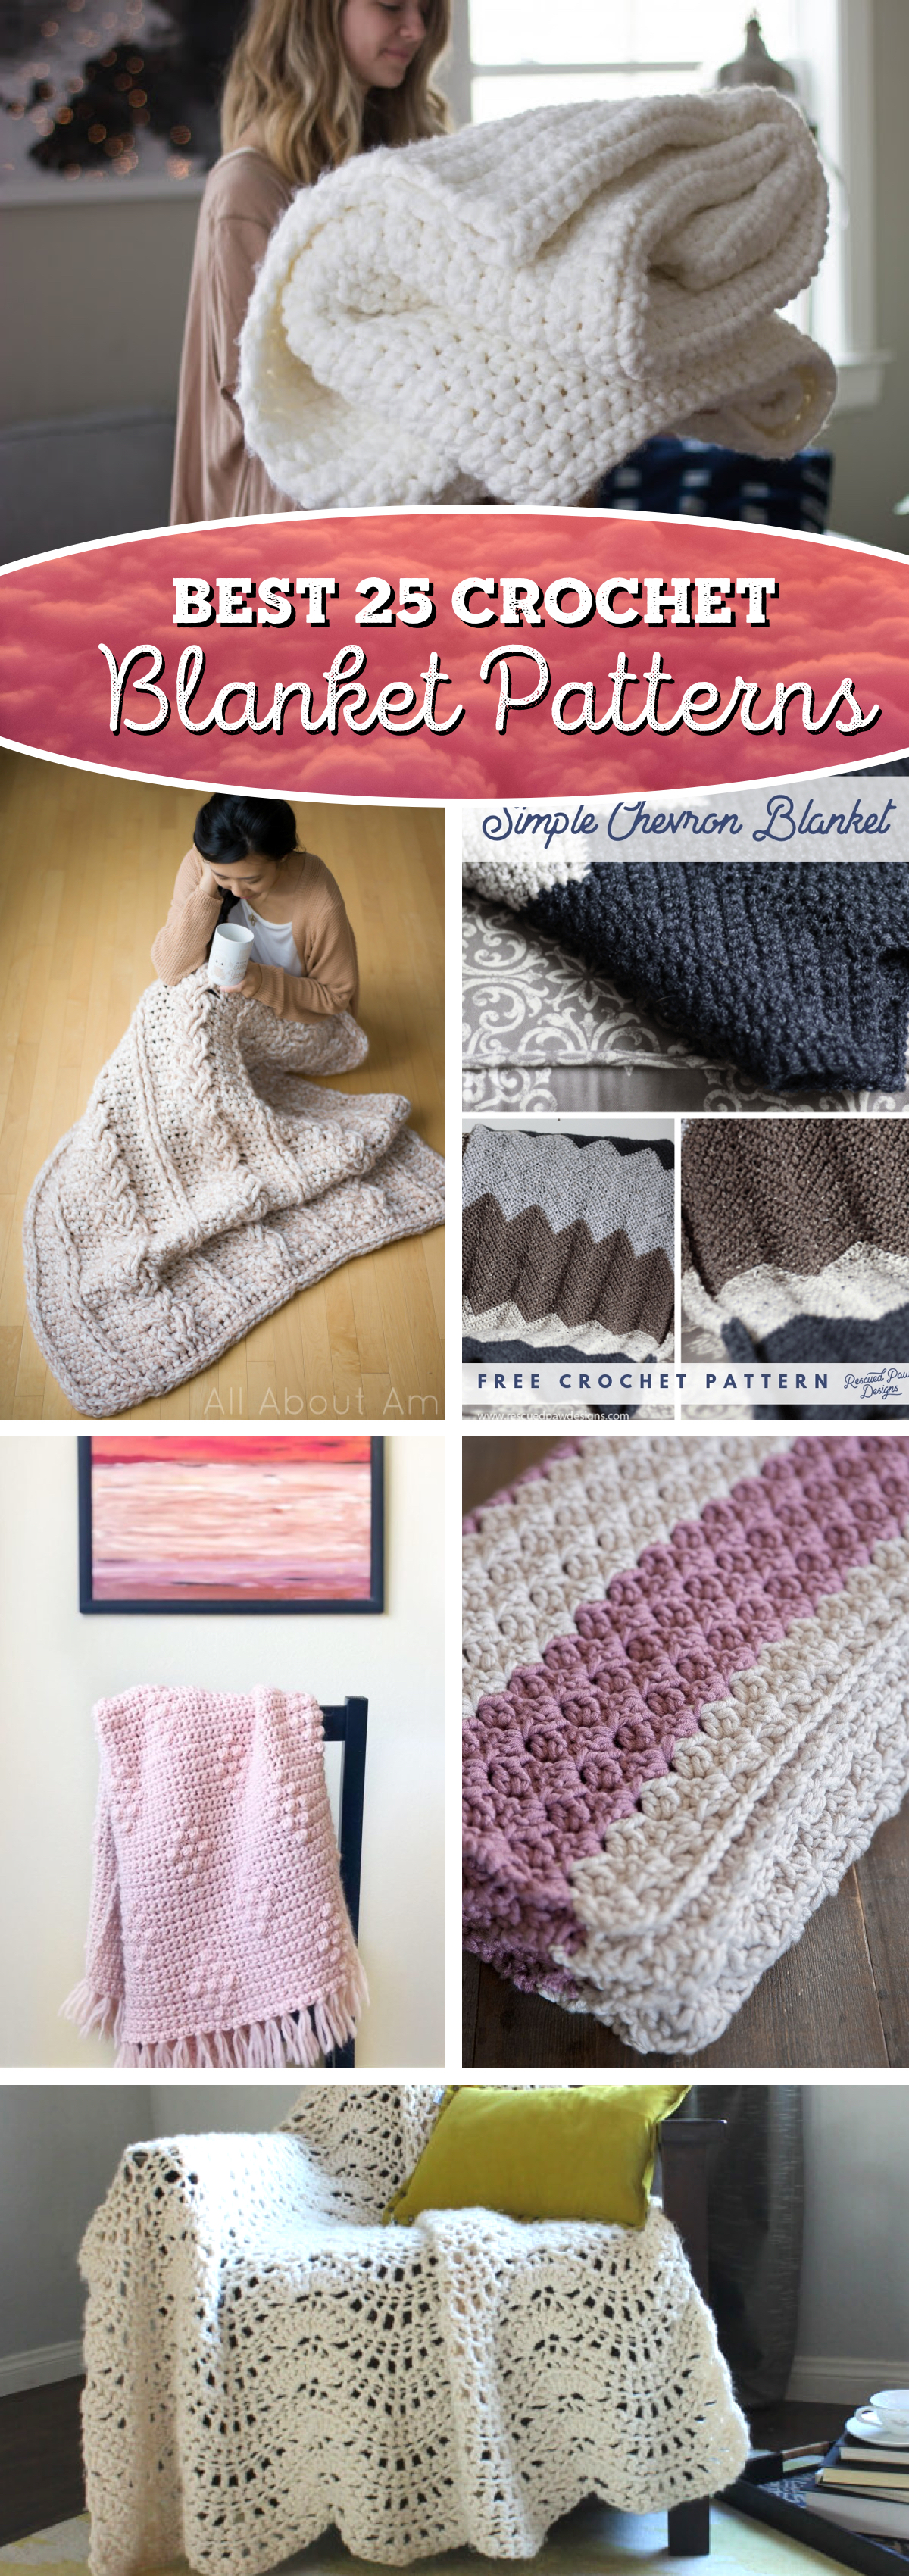 25 Crochet Blankets (Patterns) Coming with Soothing Designs and Cozy Textures!